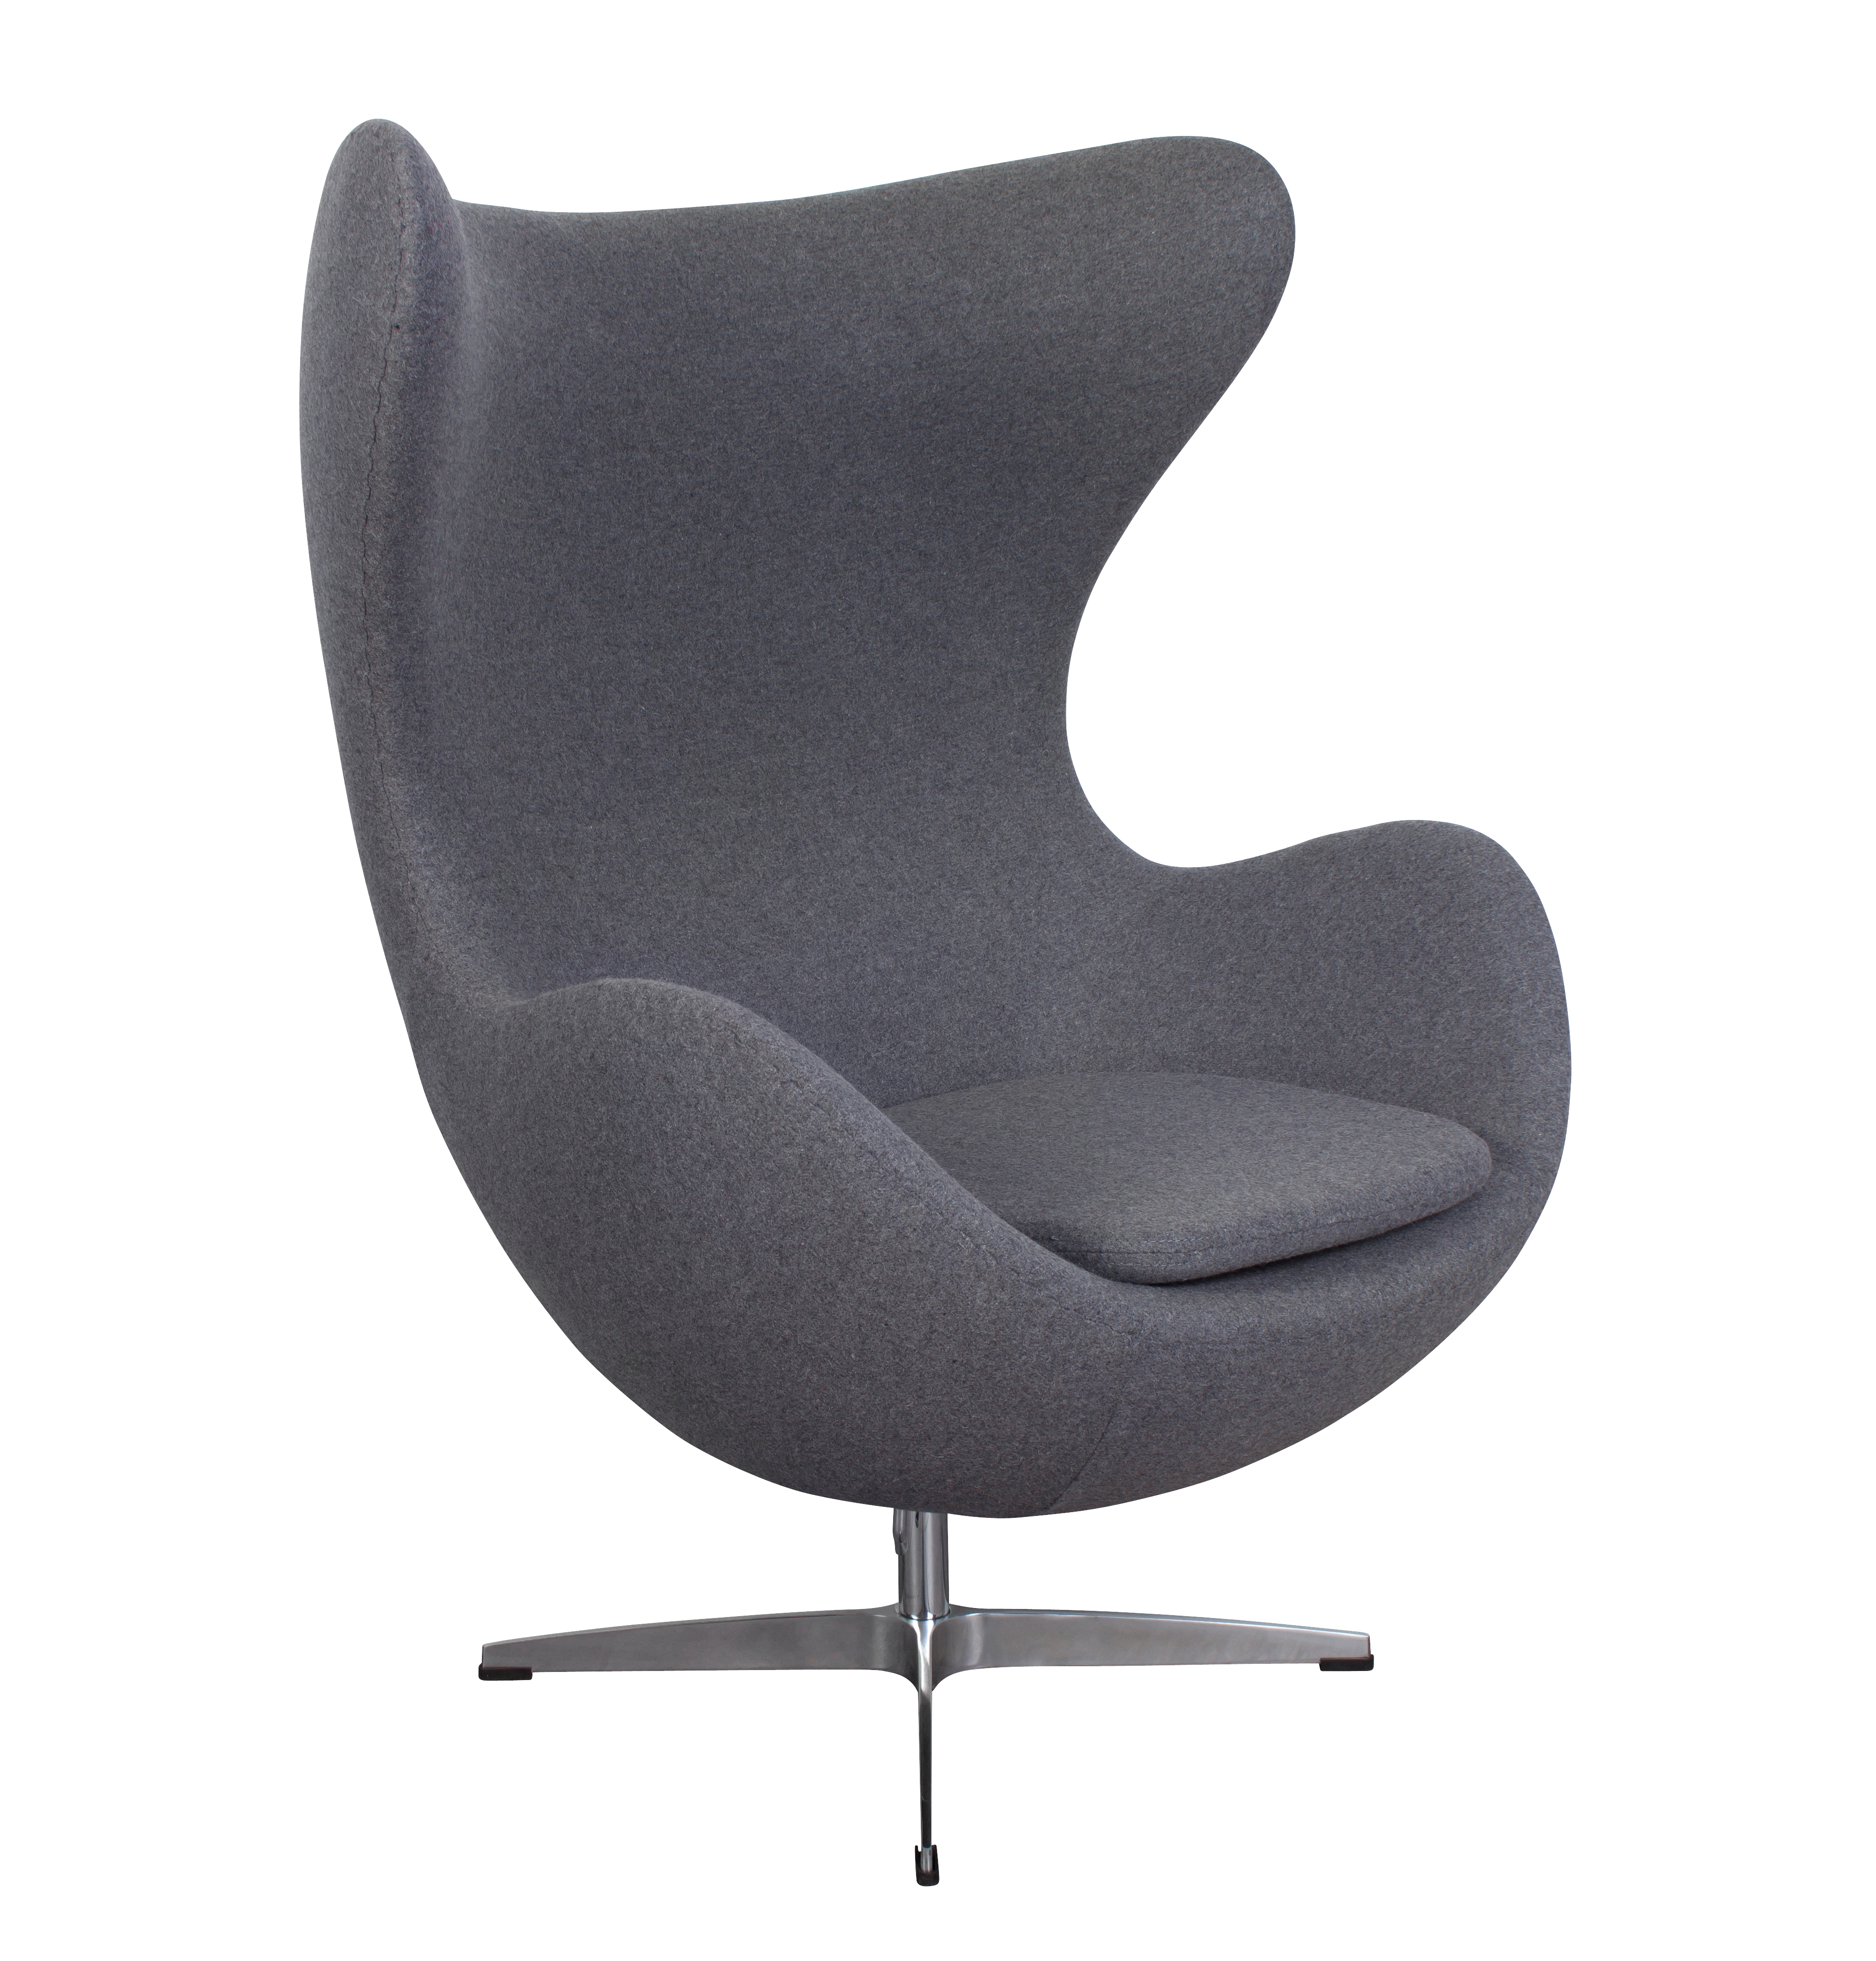 Buy Egg Chair Arne Jacobson Style Egg Chair Cashmere